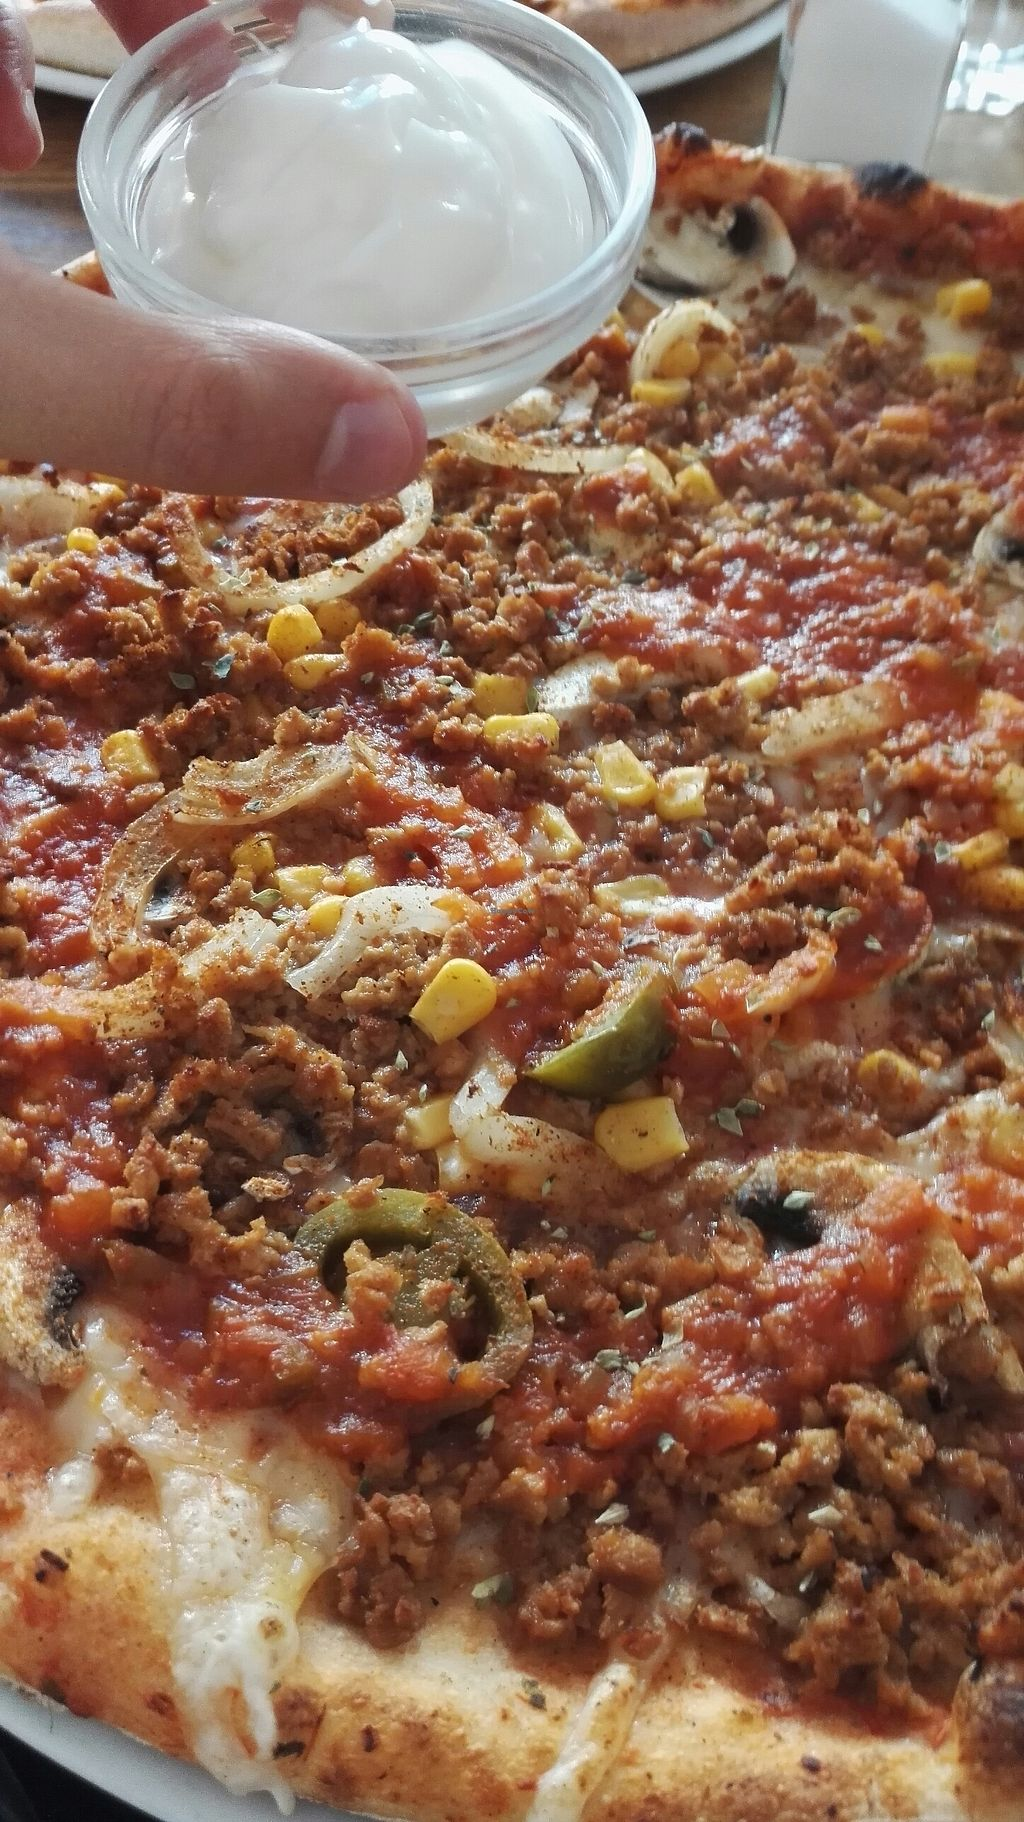 """Photo of Dennisos Pizzeria  by <a href=""""/members/profile/Miio%20Seppaenen"""">Miio Seppaenen</a> <br/>new mexicana pizza with garlic sauce <br/> July 8, 2017  - <a href='/contact/abuse/image/41237/277970'>Report</a>"""